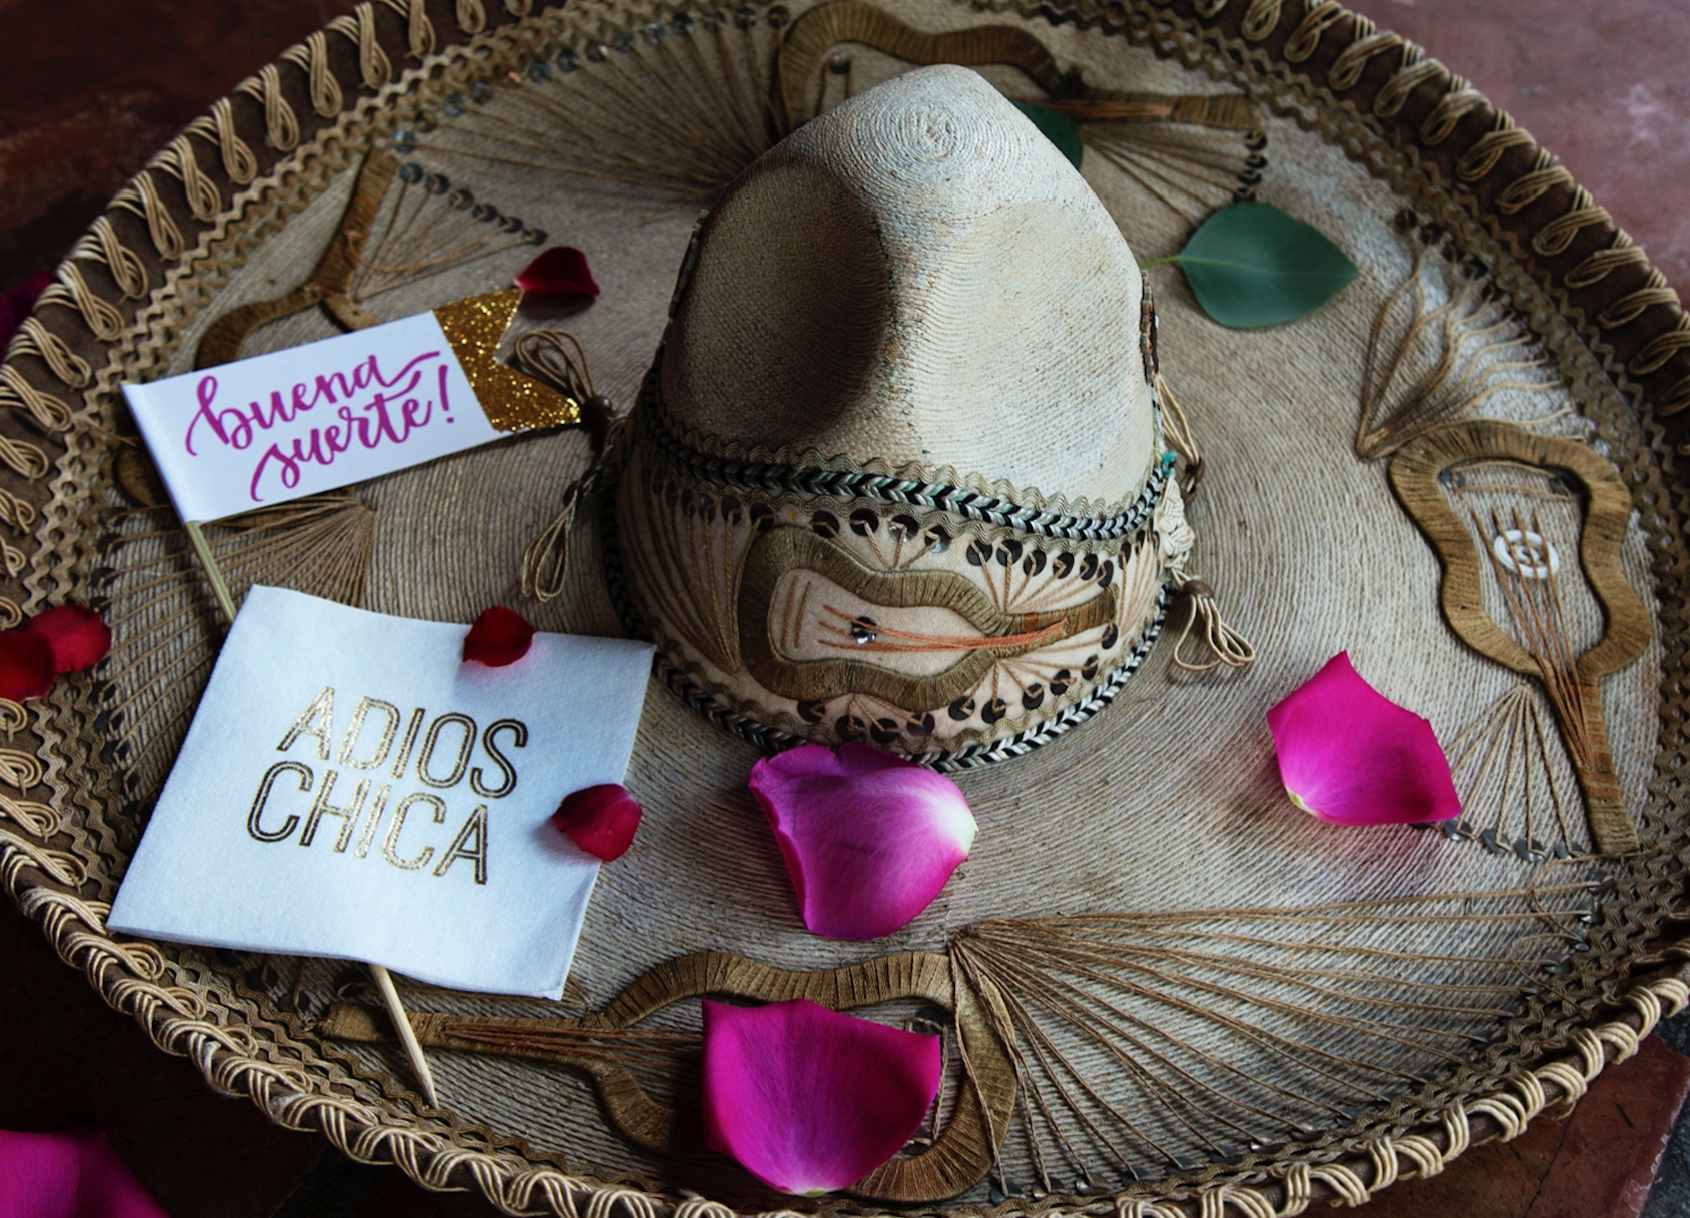 mexican-party-decor-sombrero-adios-going-away-pink-petals-resturant-maxit-flower-design-houston-texas